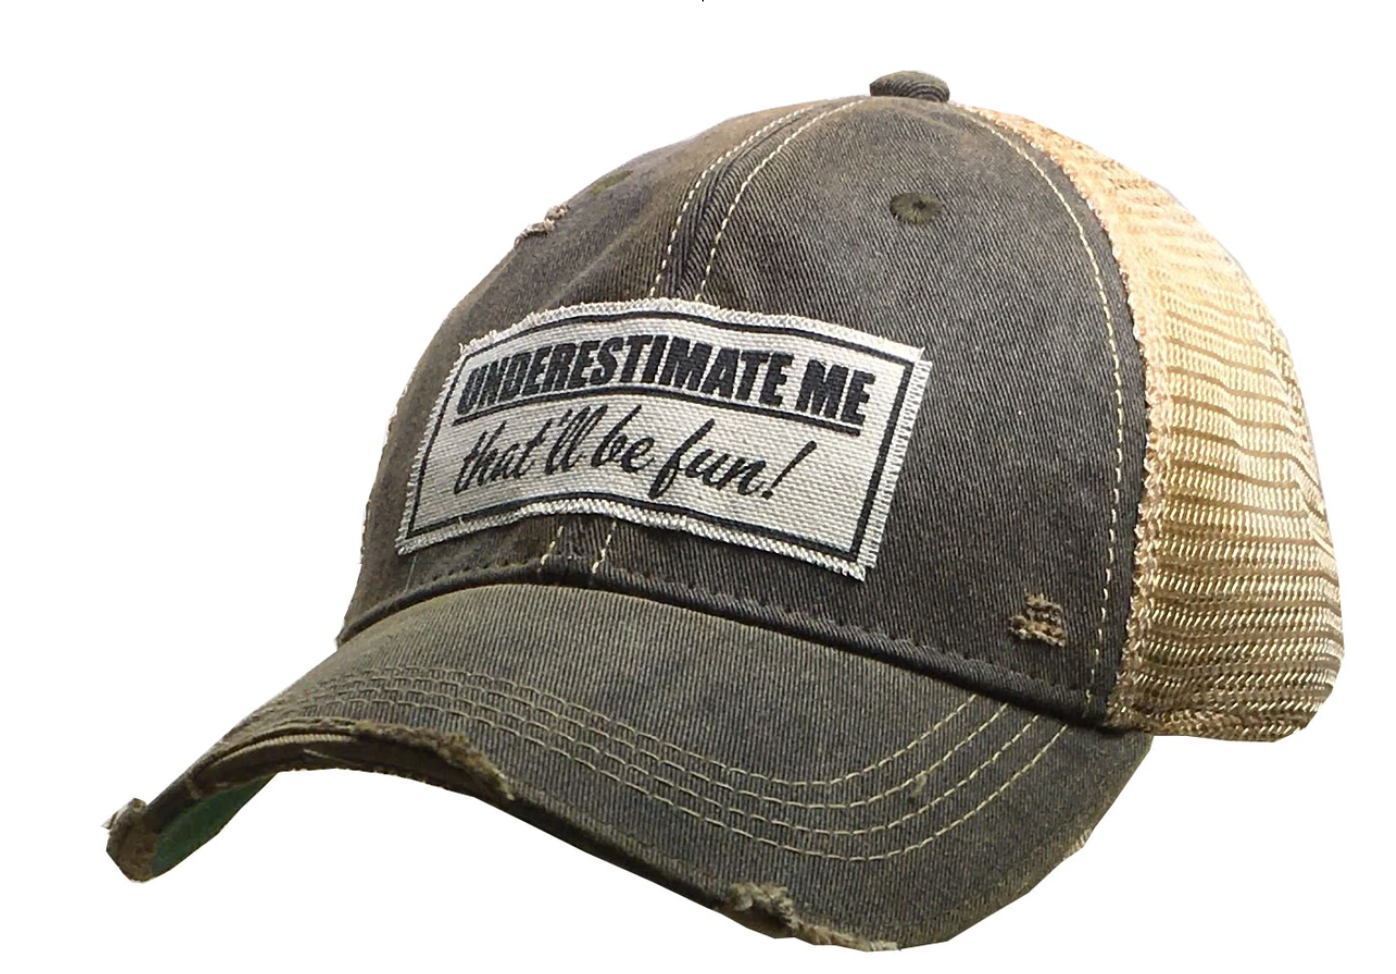 Black Distressed Underestimate me, that'll be fun Trucker hat